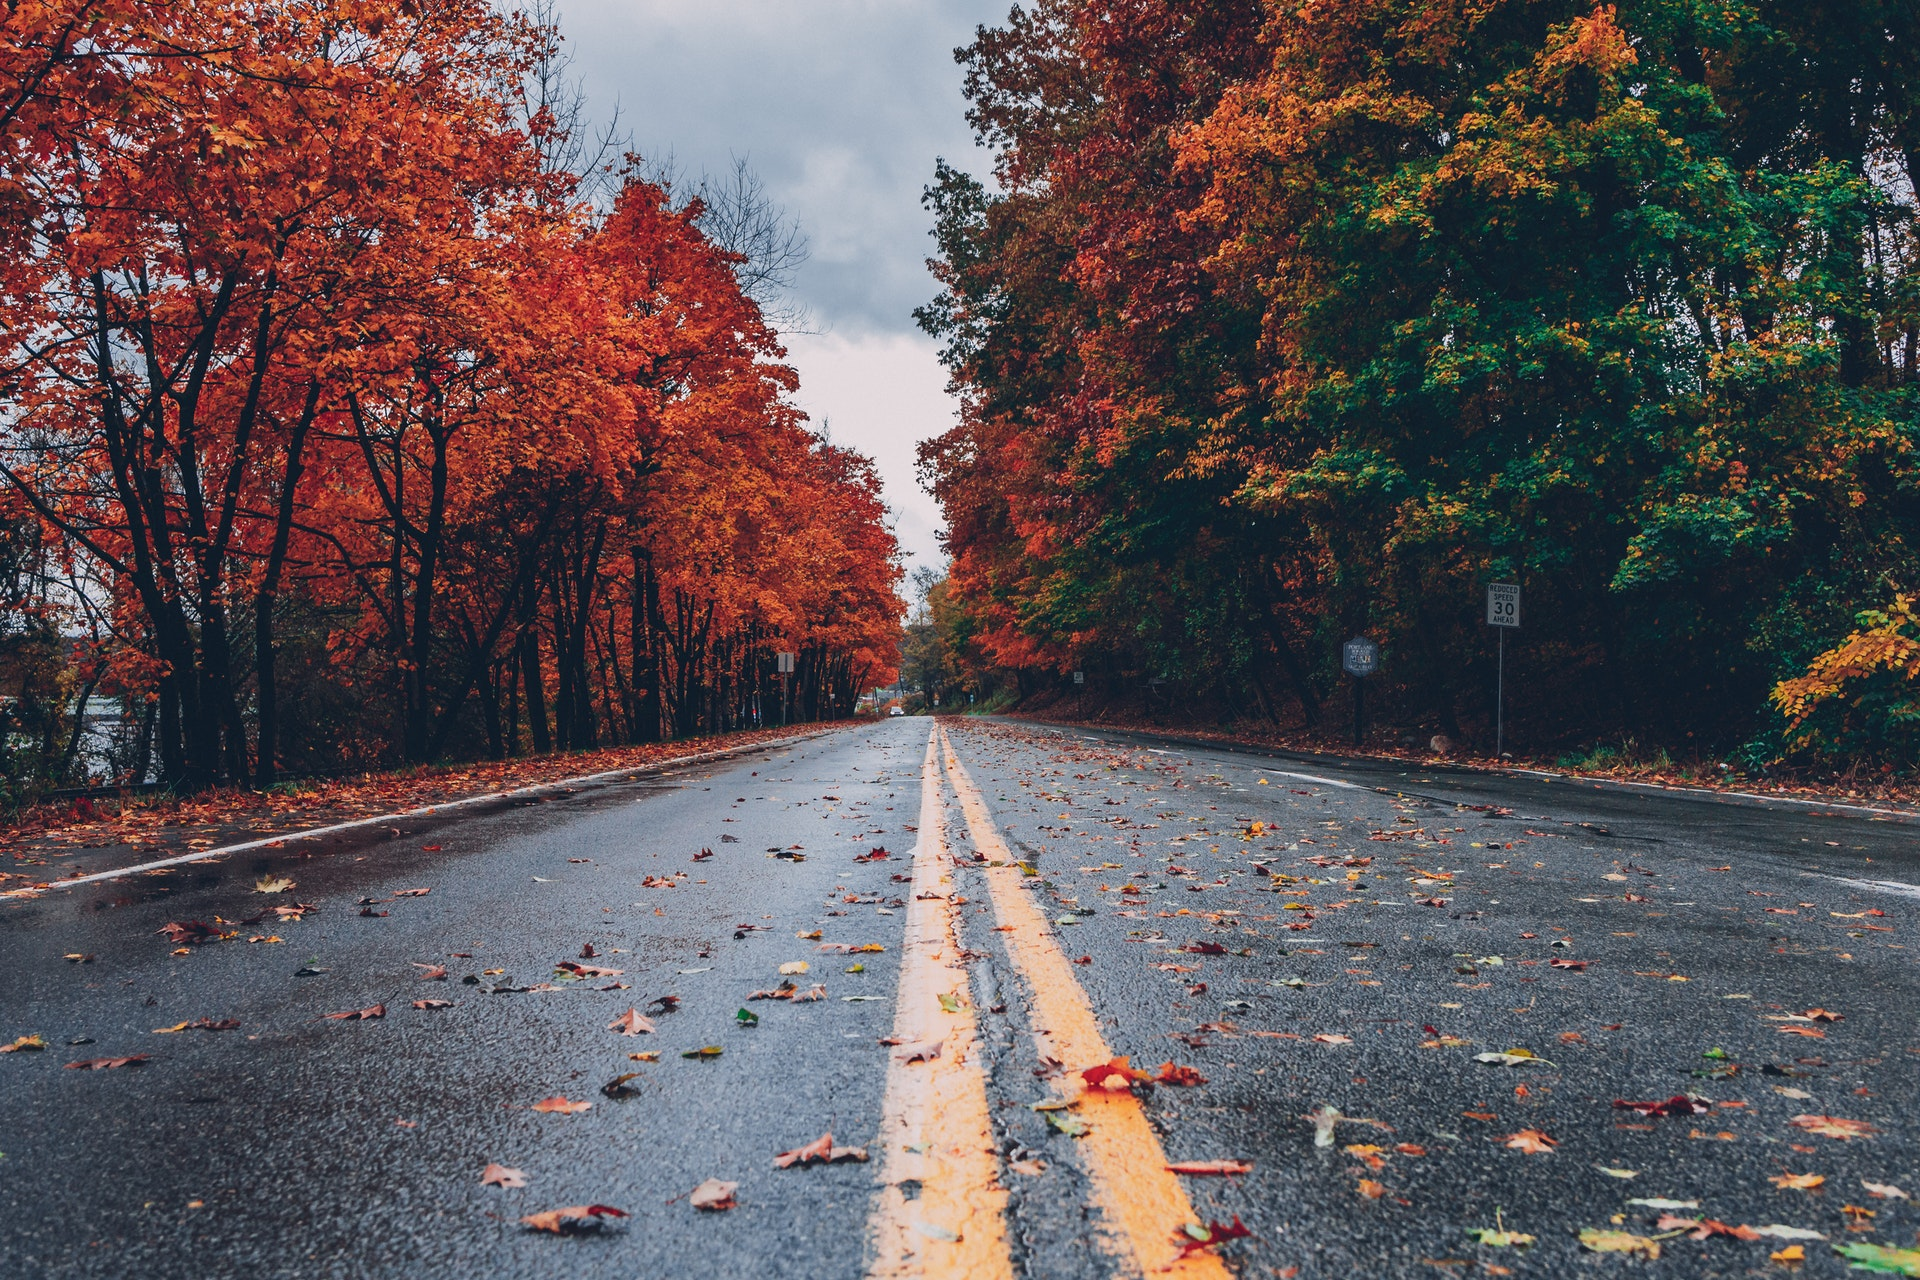 Wet road flanked by fall leaves on trees.